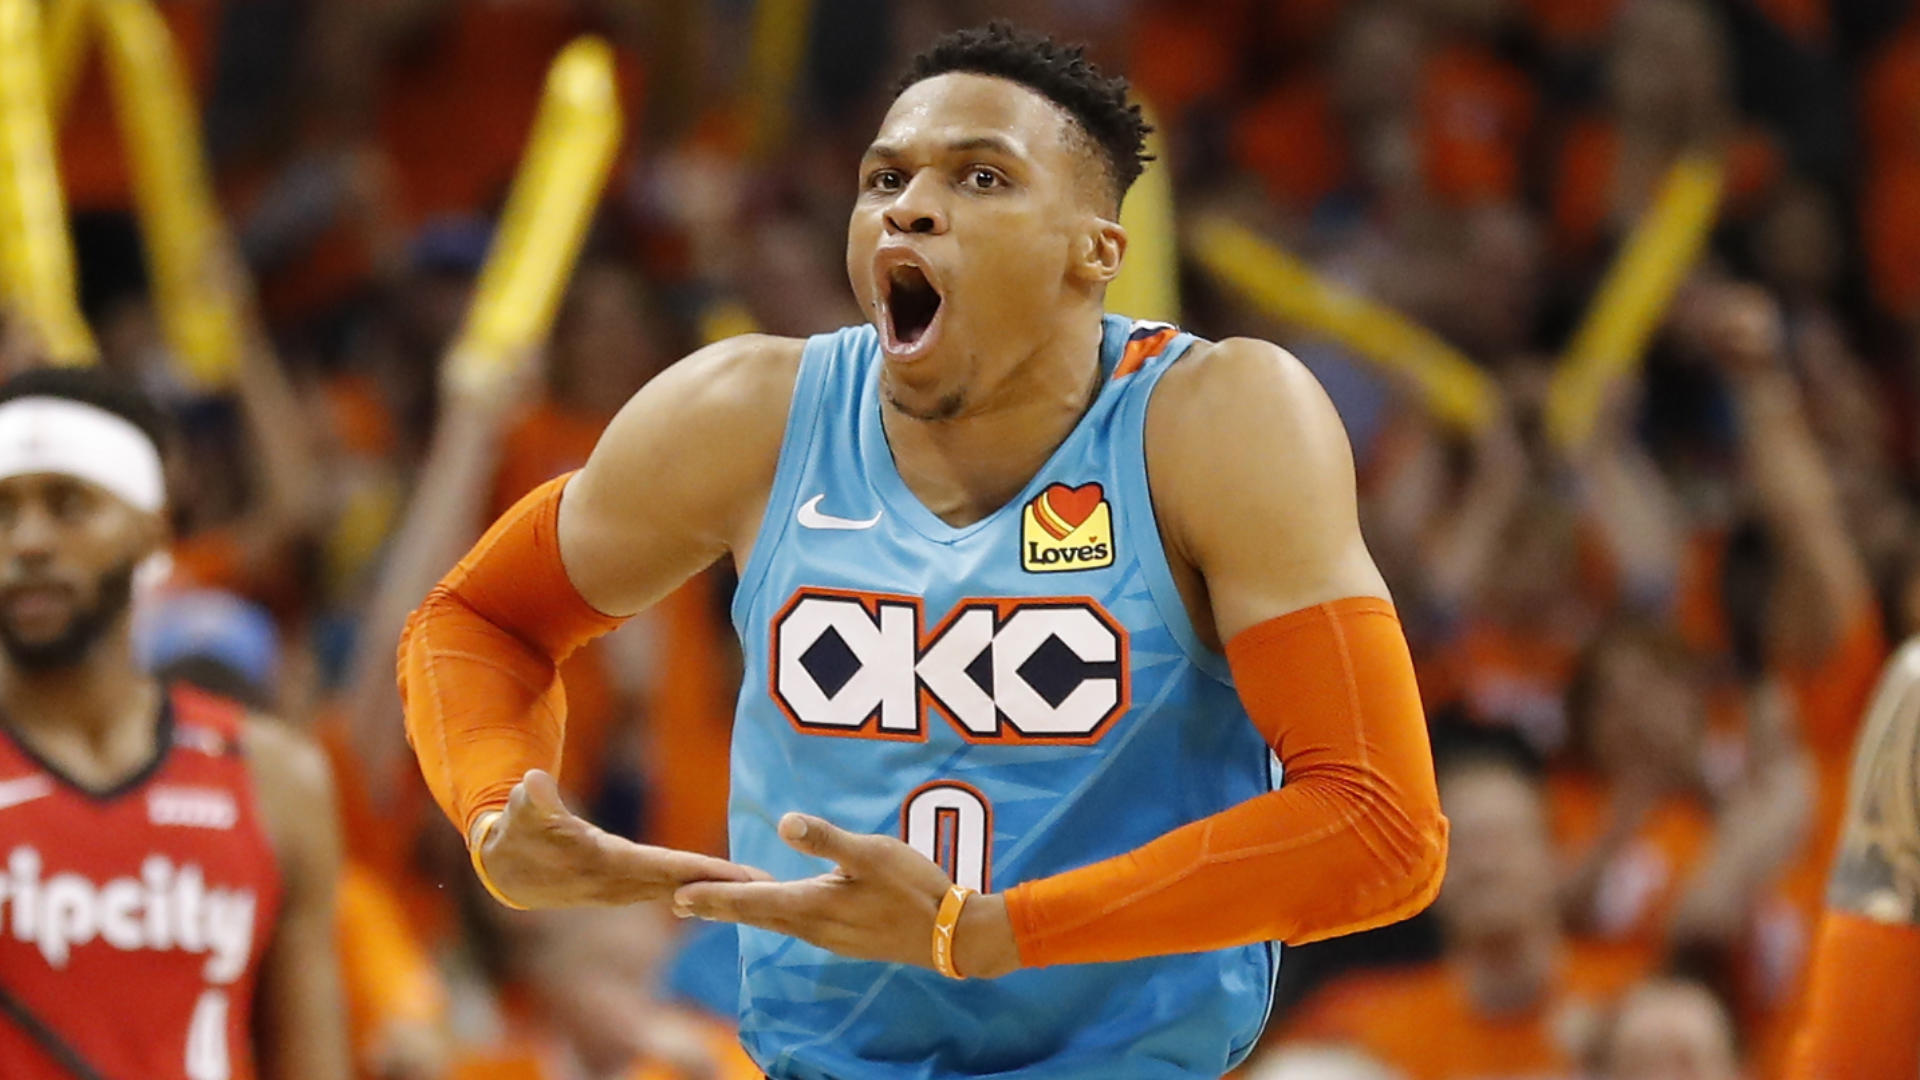 NBA Playoffs 2019: Watch Thunder vs. Trail Blazers Game 4, series schedule, results, TV channel, live stream, odds